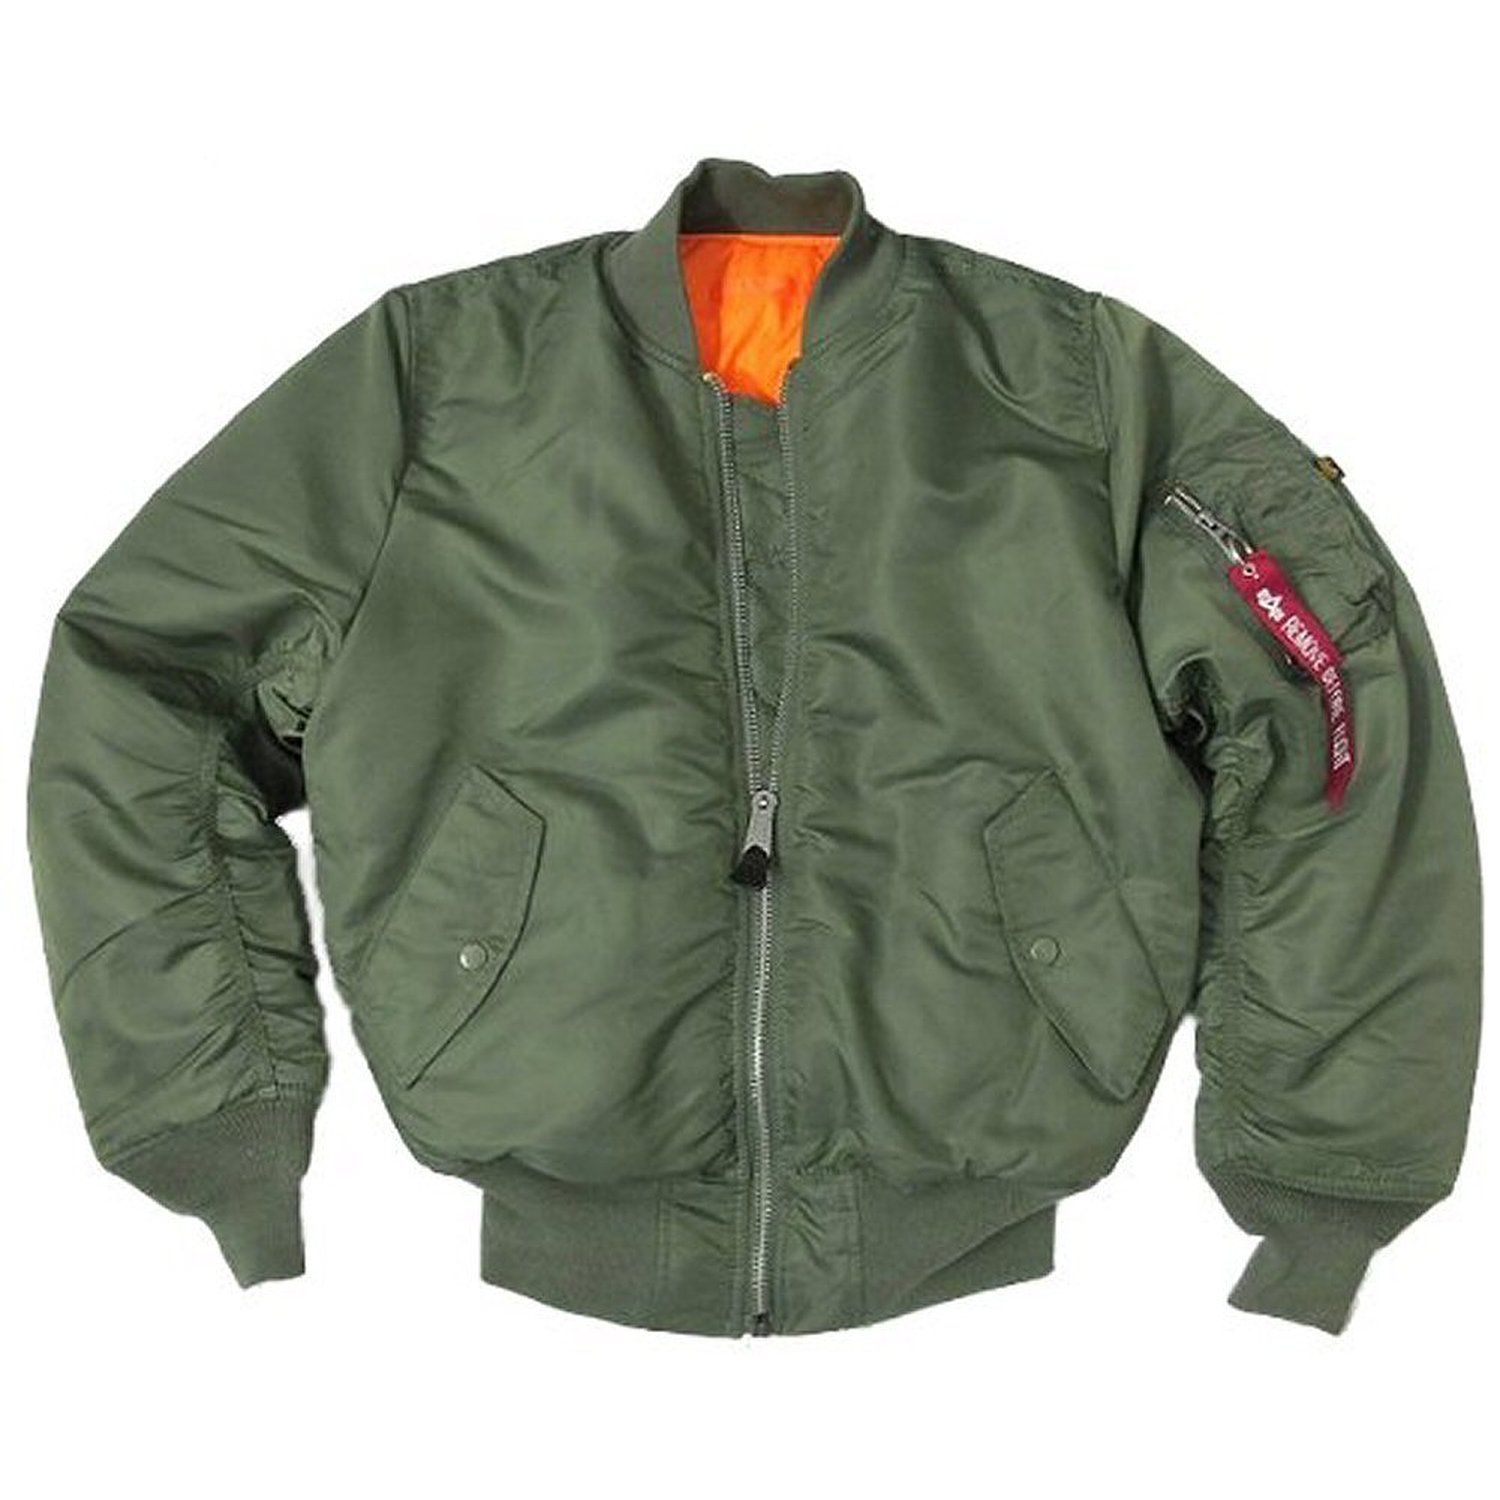 Real Bomber Jacket Jacket To